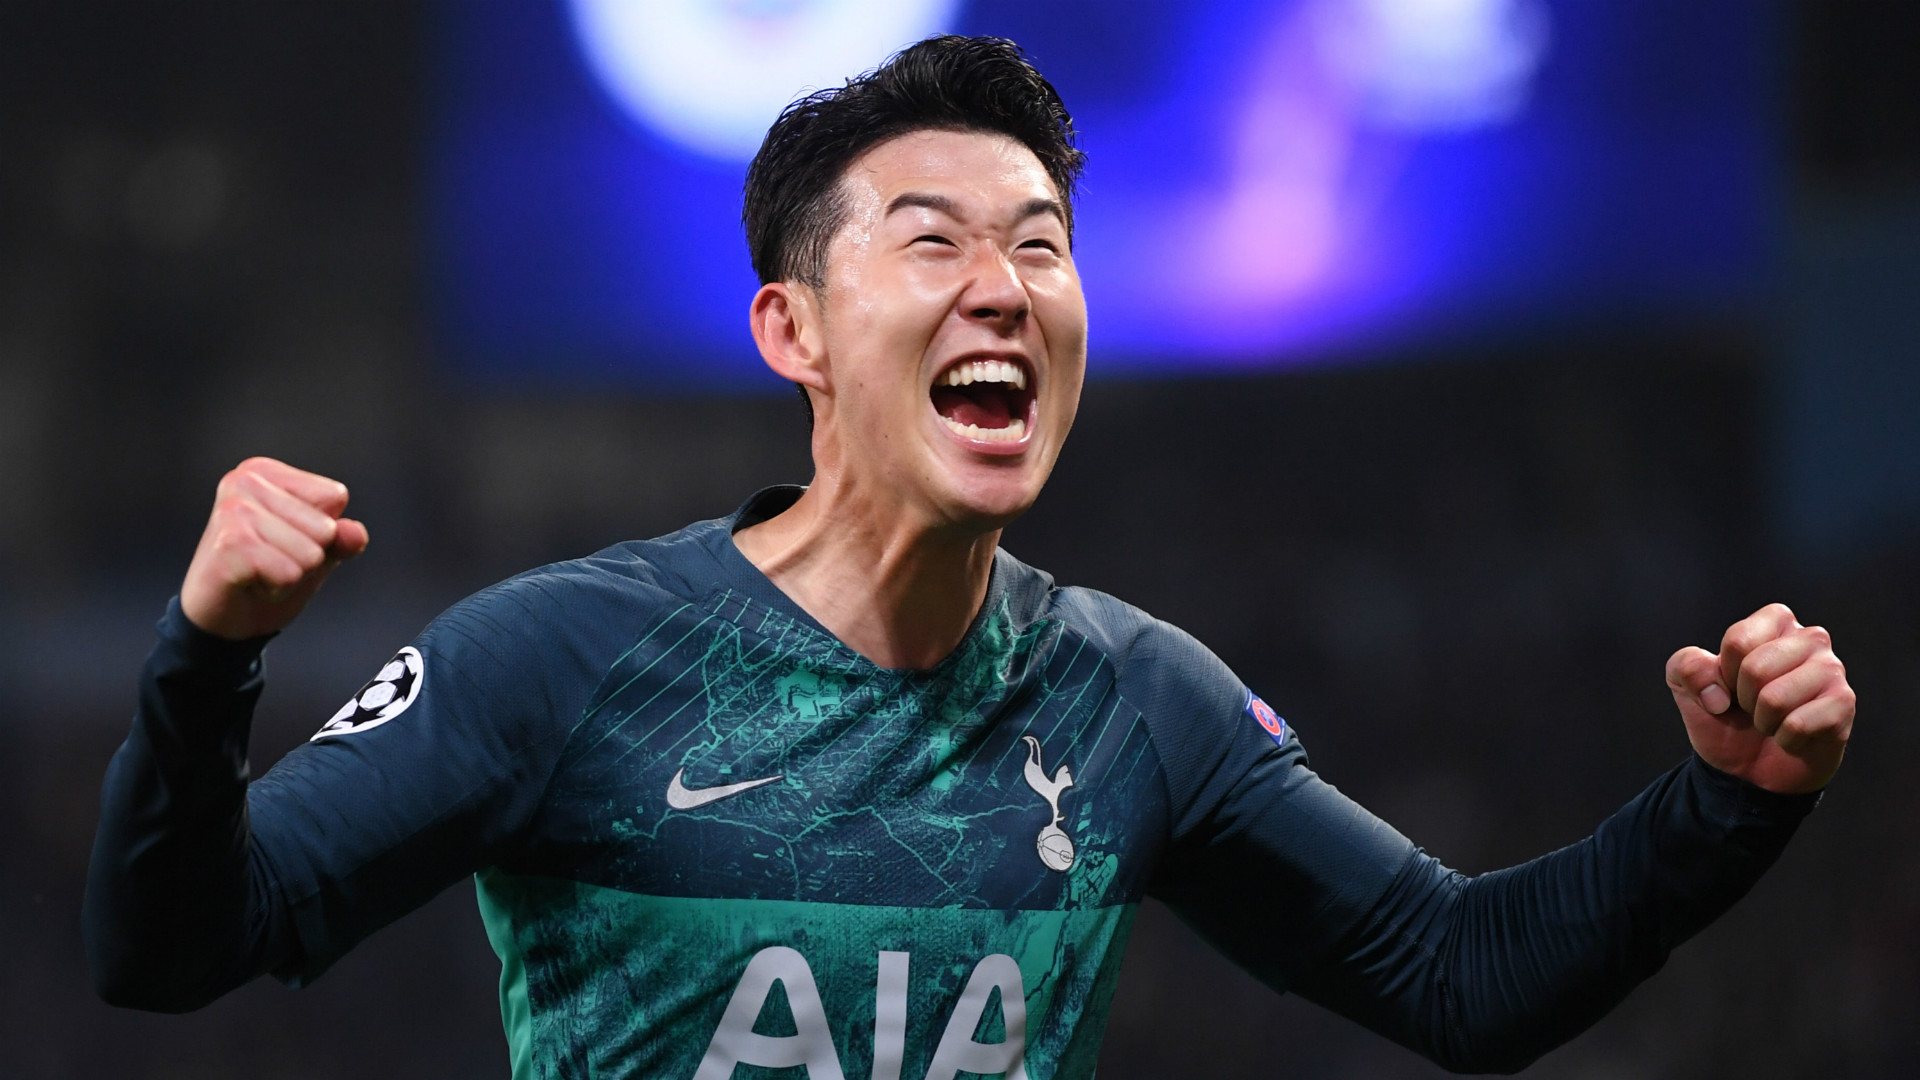 'Why not?' - Tottenham star Son might be a part of Napoli, says agent